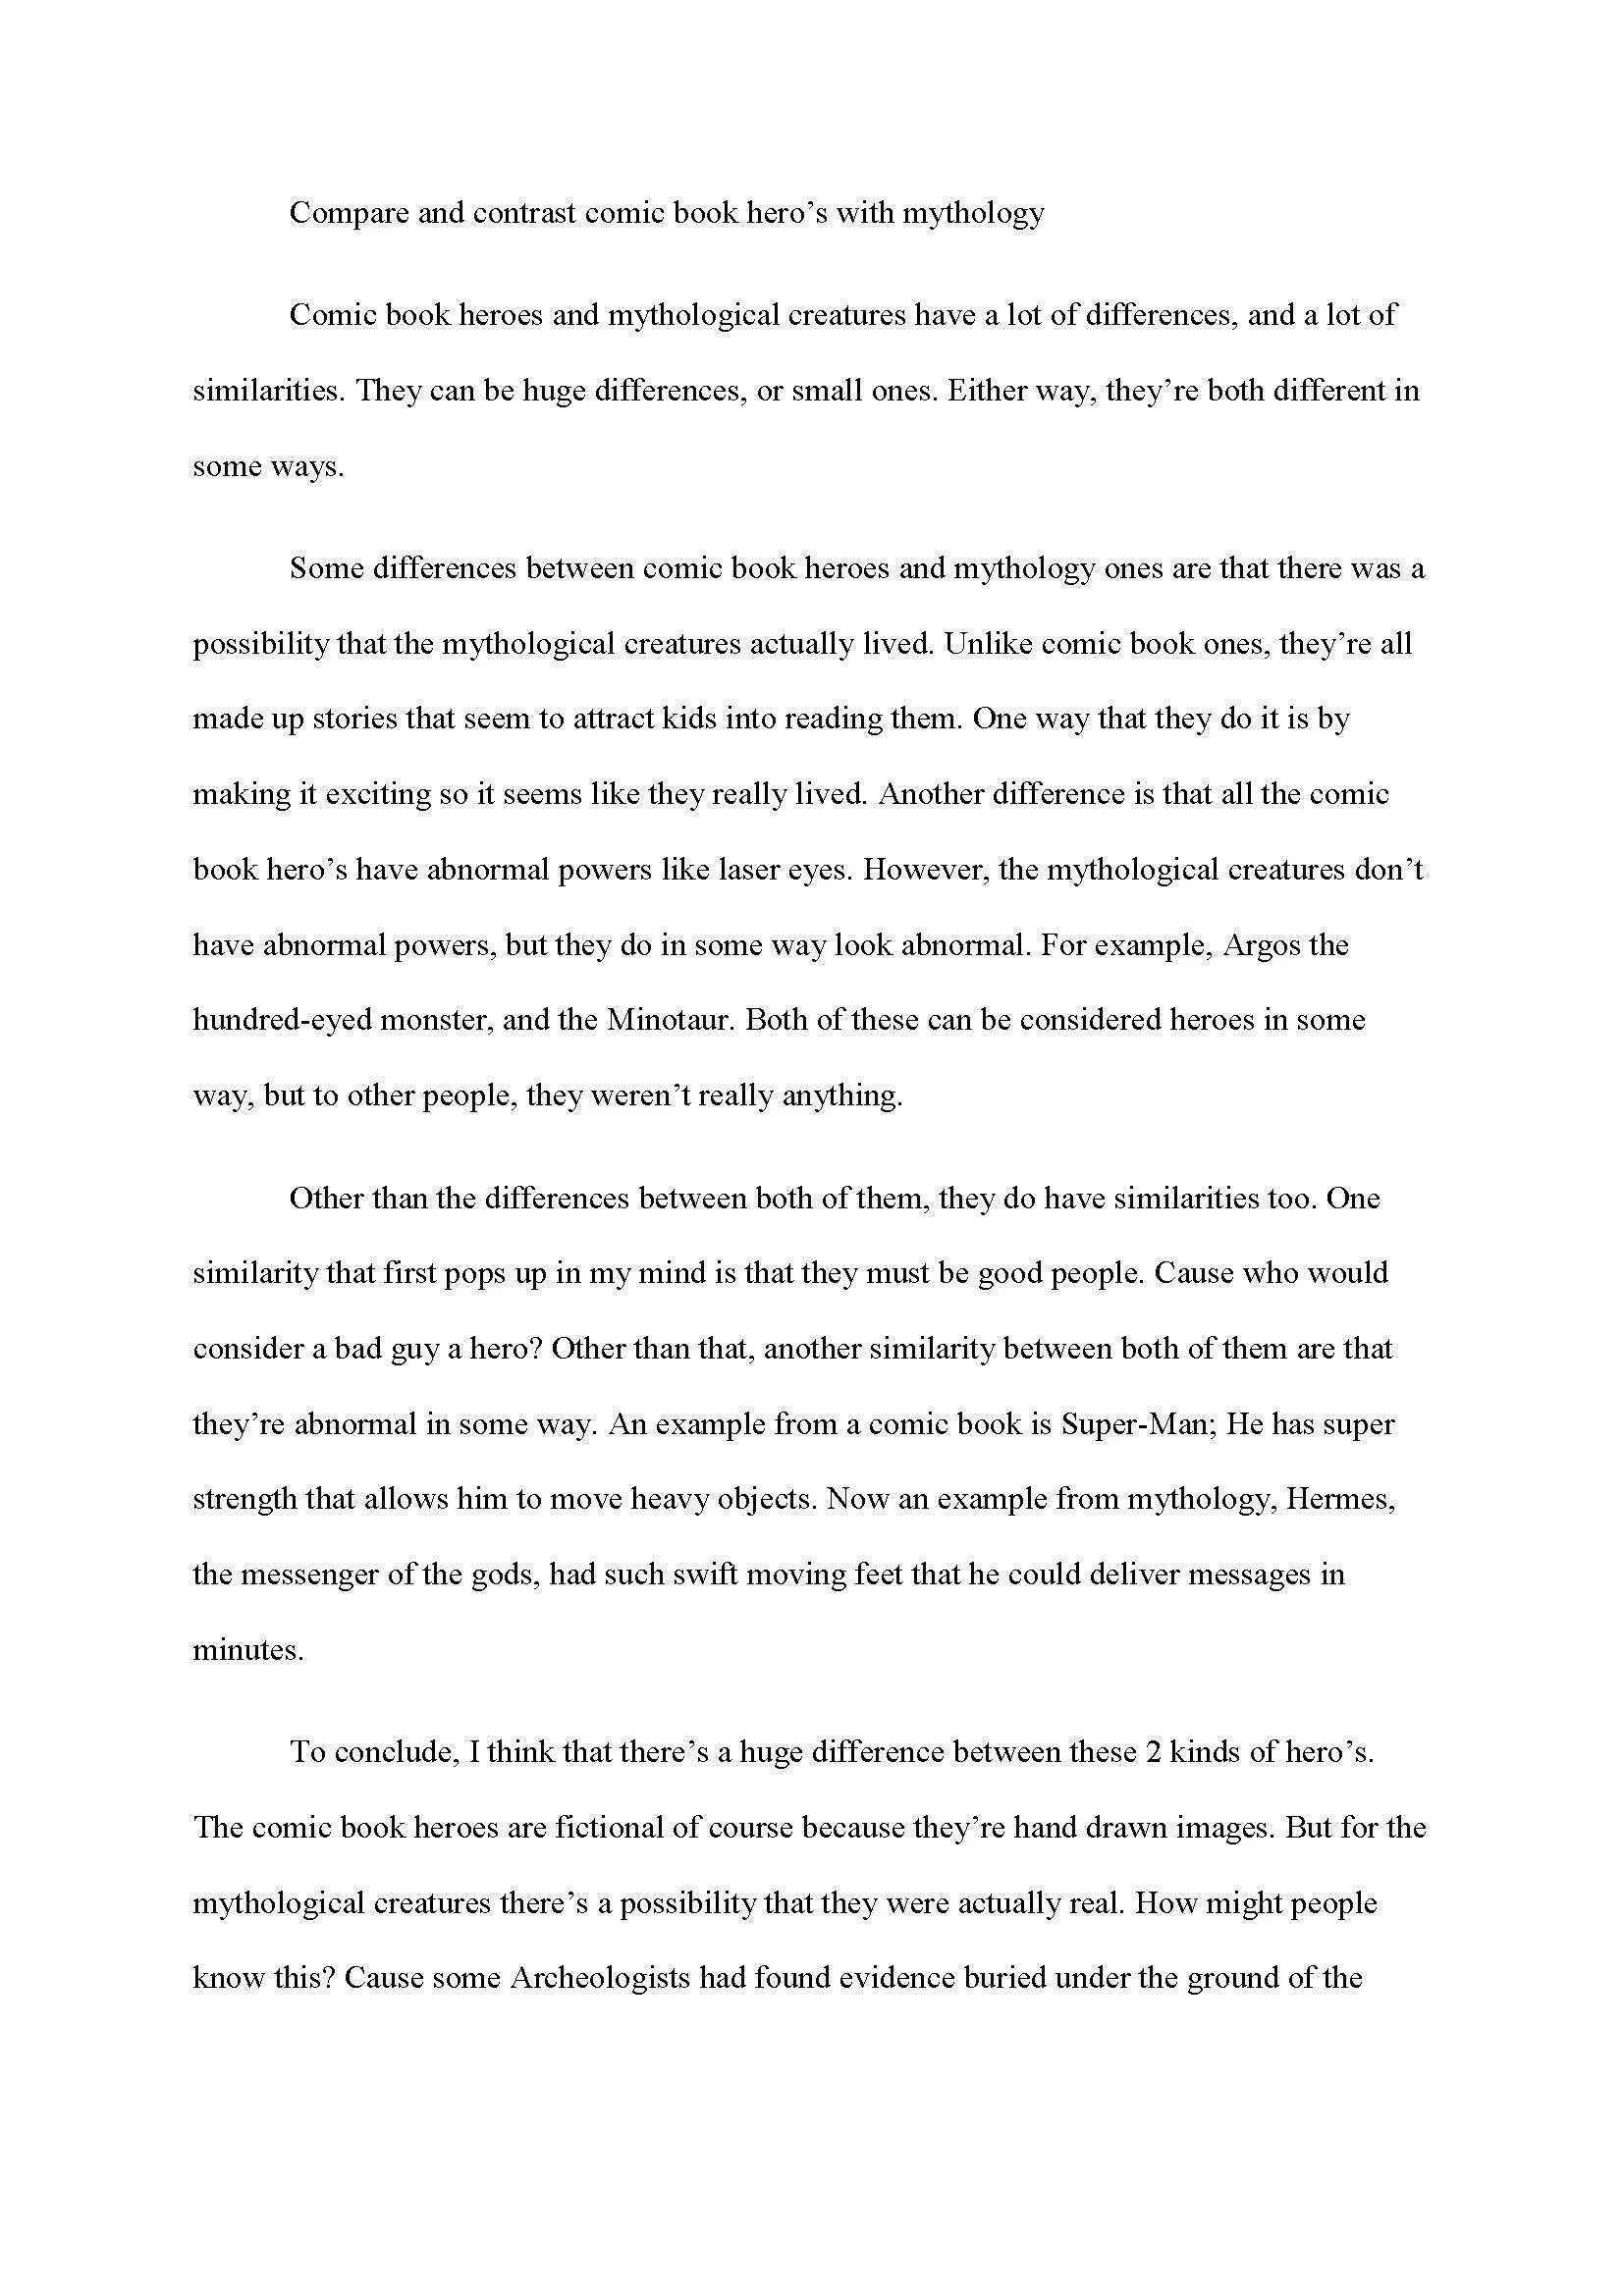 006 Excellent Compare And Contrast Essay Example College  For Topic OutlineFull